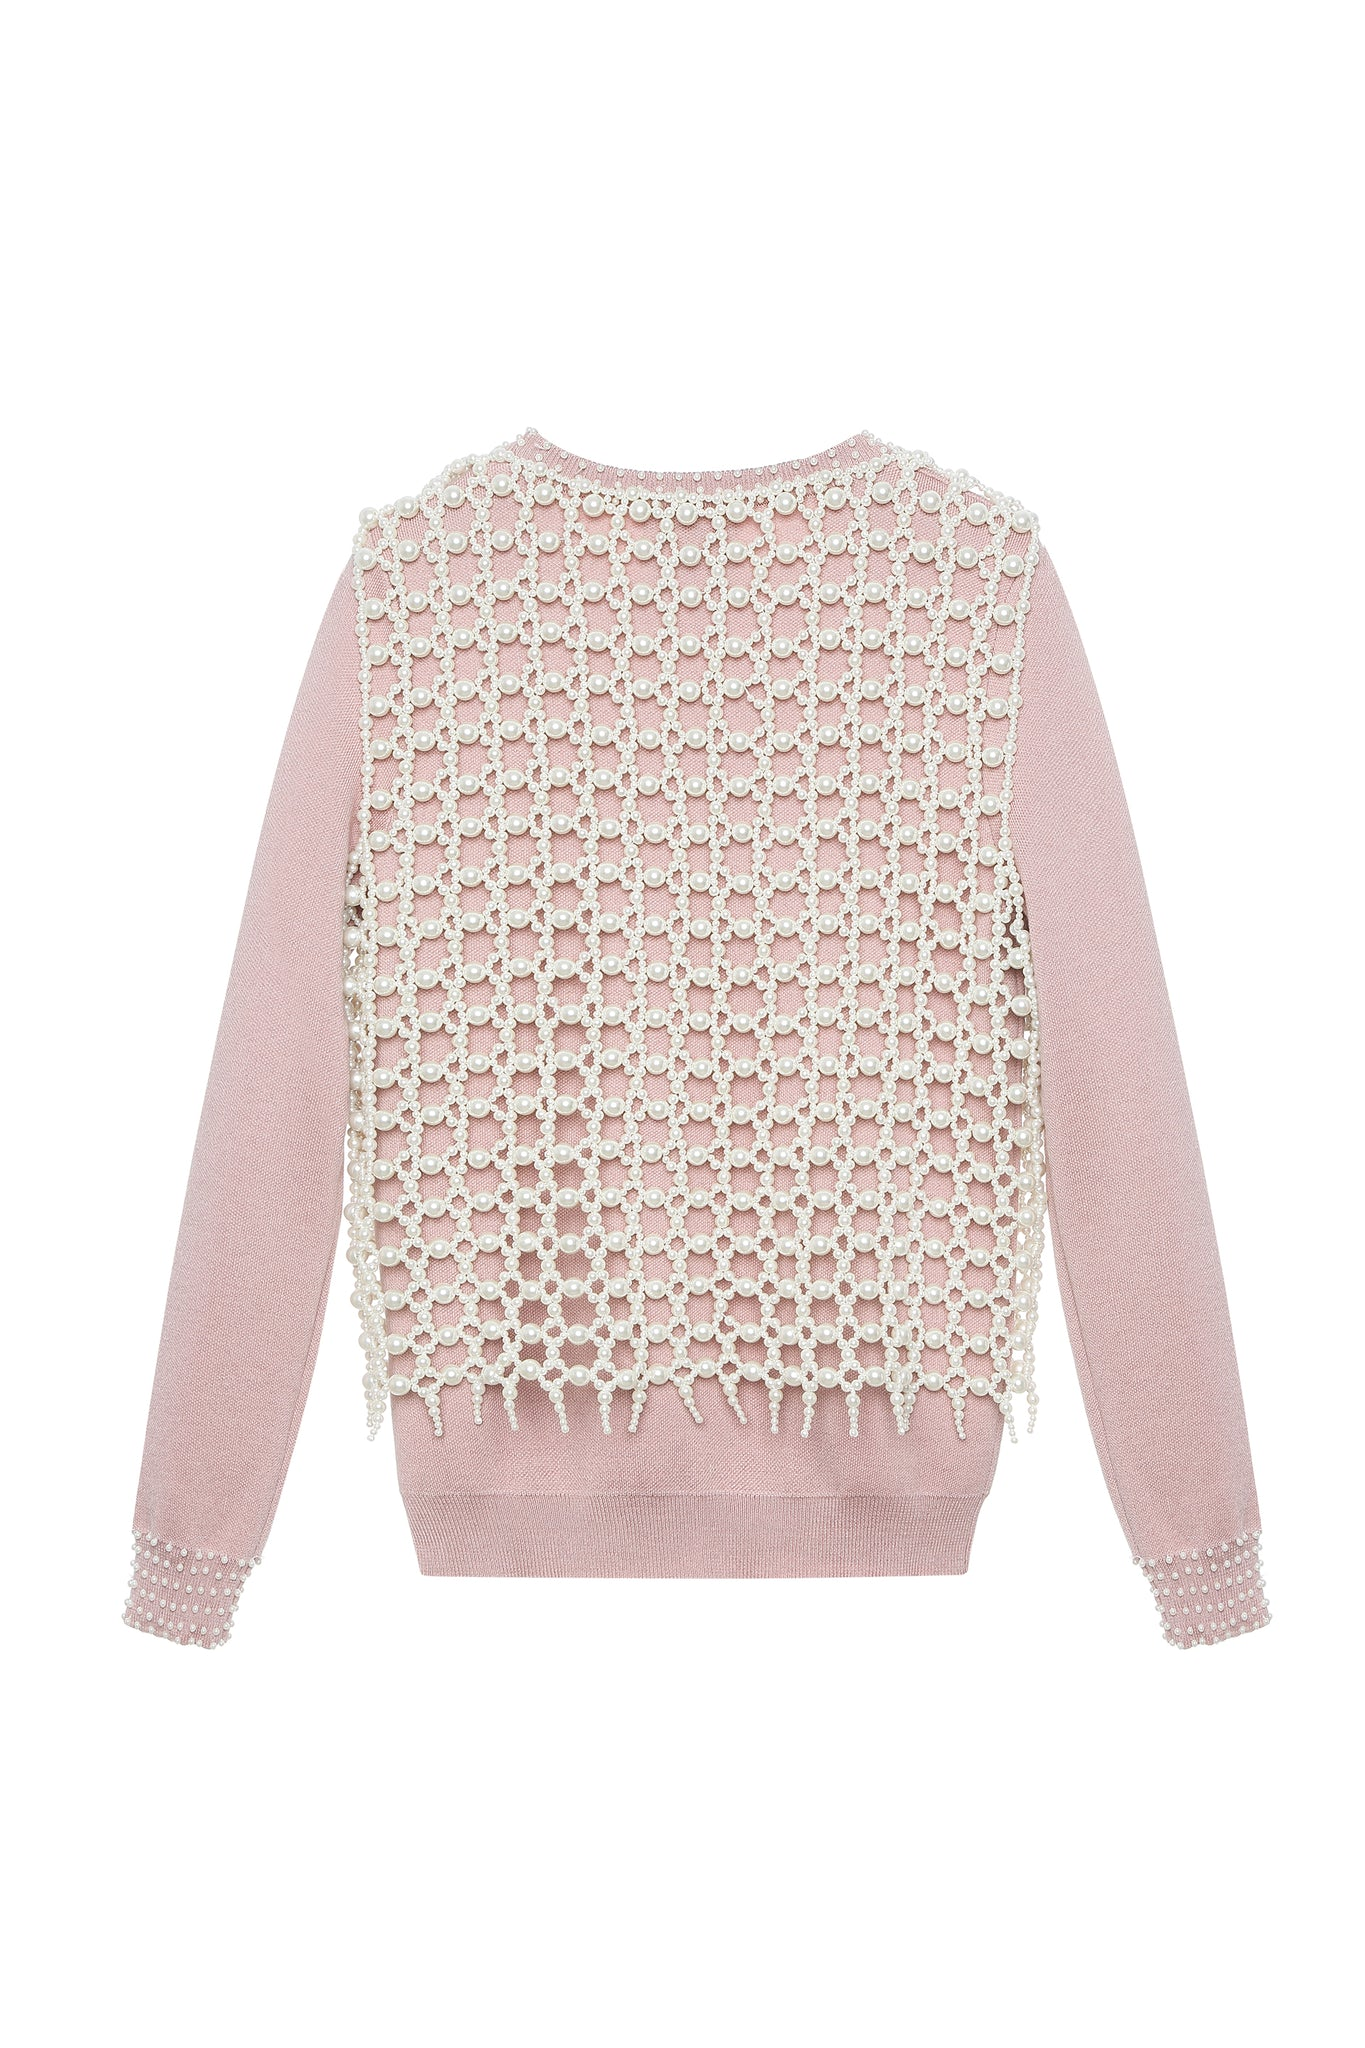 Sweater, with Handwoven Pearl Vest, Pink